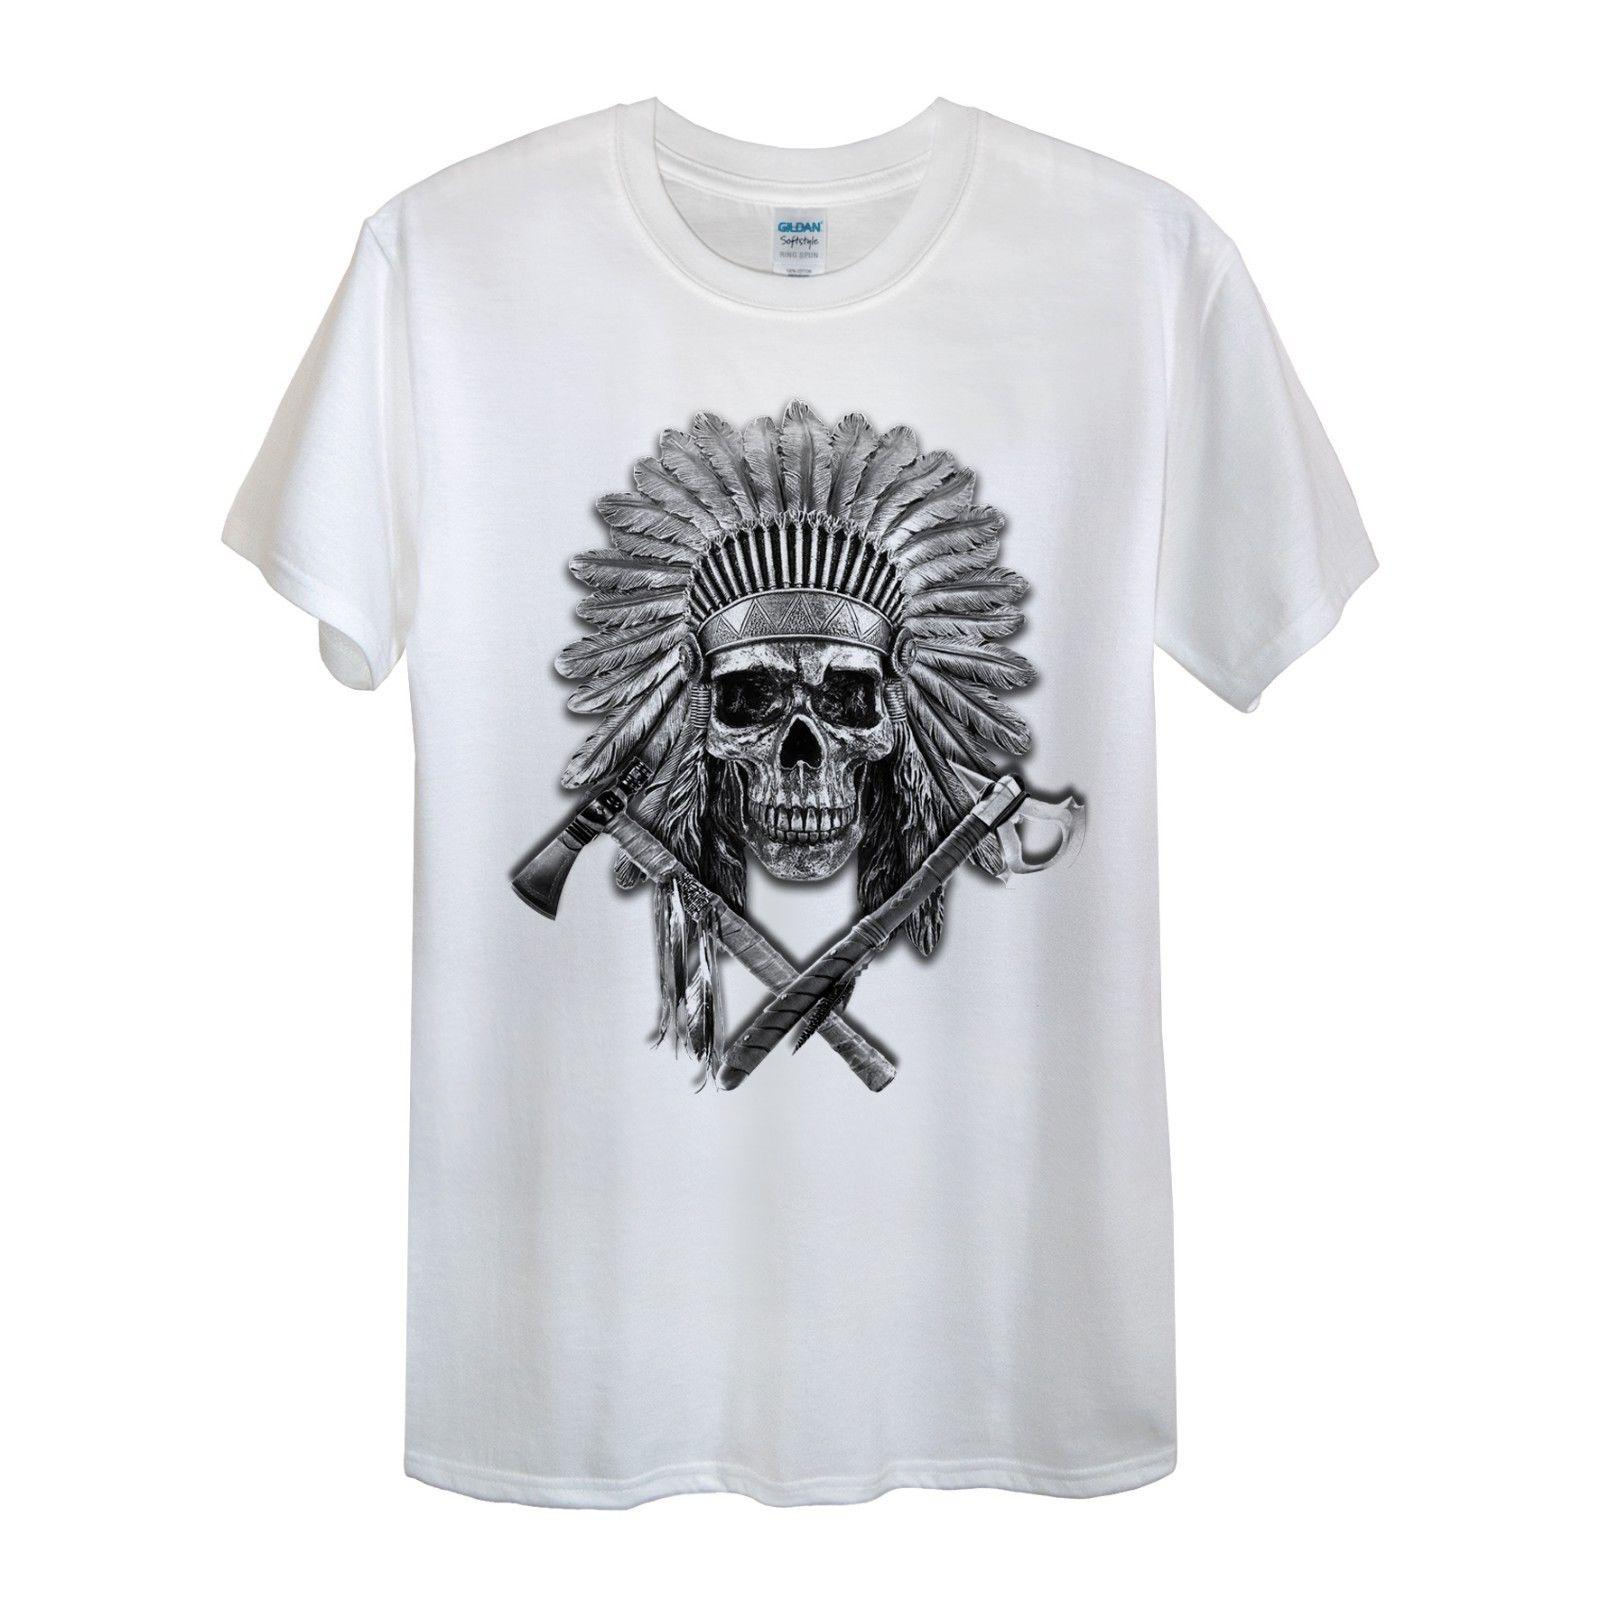 cdc0da3ade Native American T-Shirt Women Unisex Men Tomahawk Chief Skull Bones Tribal  GiftFunny free shipping Unisex Casual top